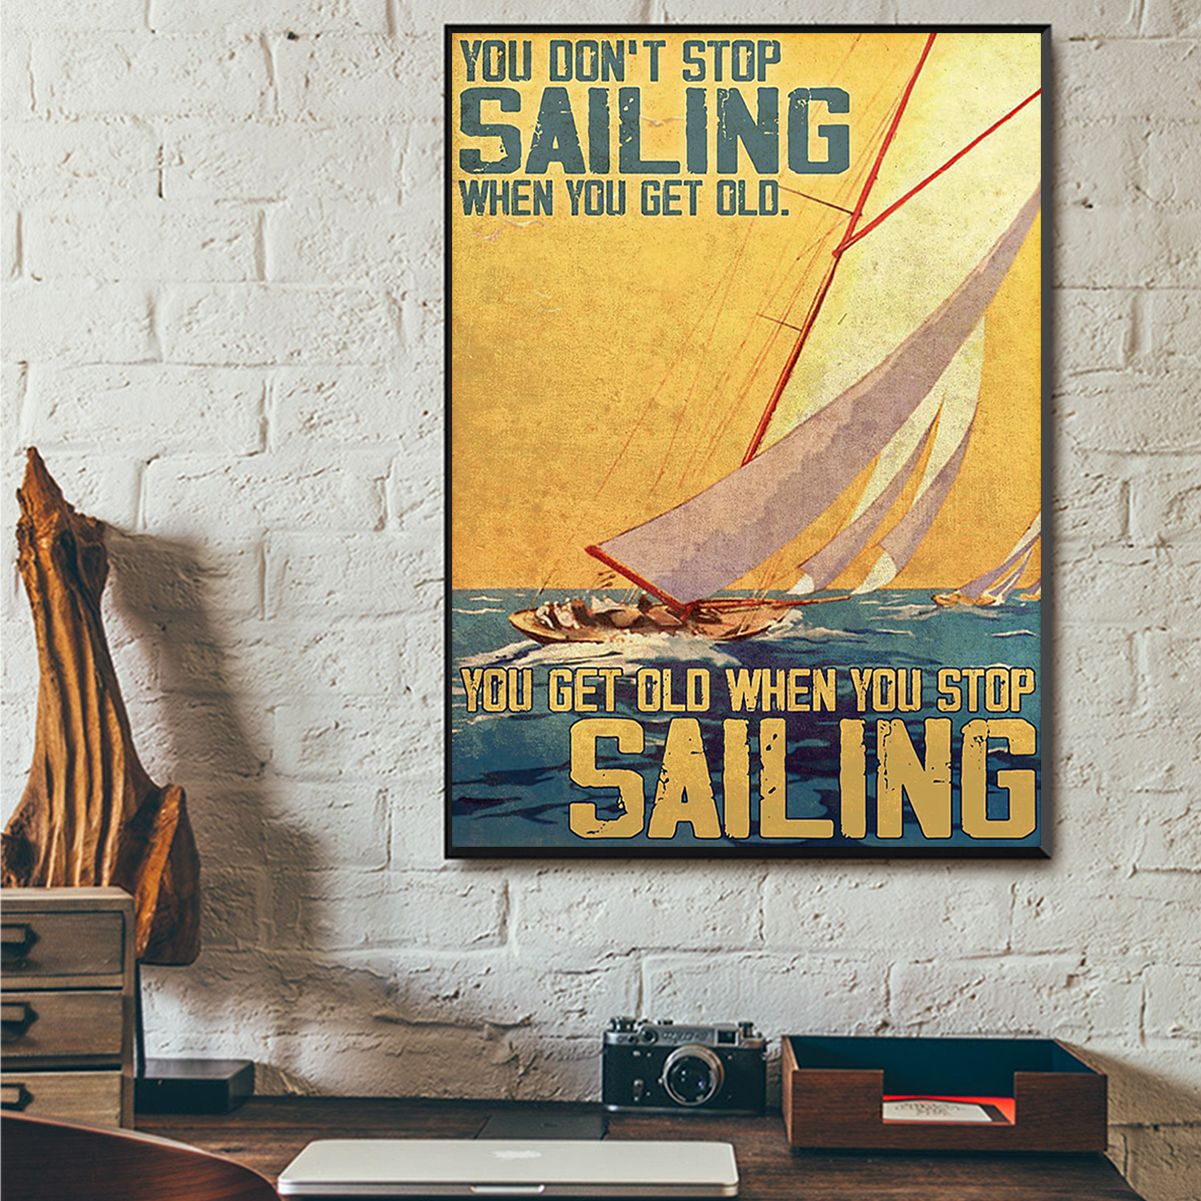 You don't stop sailing when you get old you get old when you stop sailing poster A3